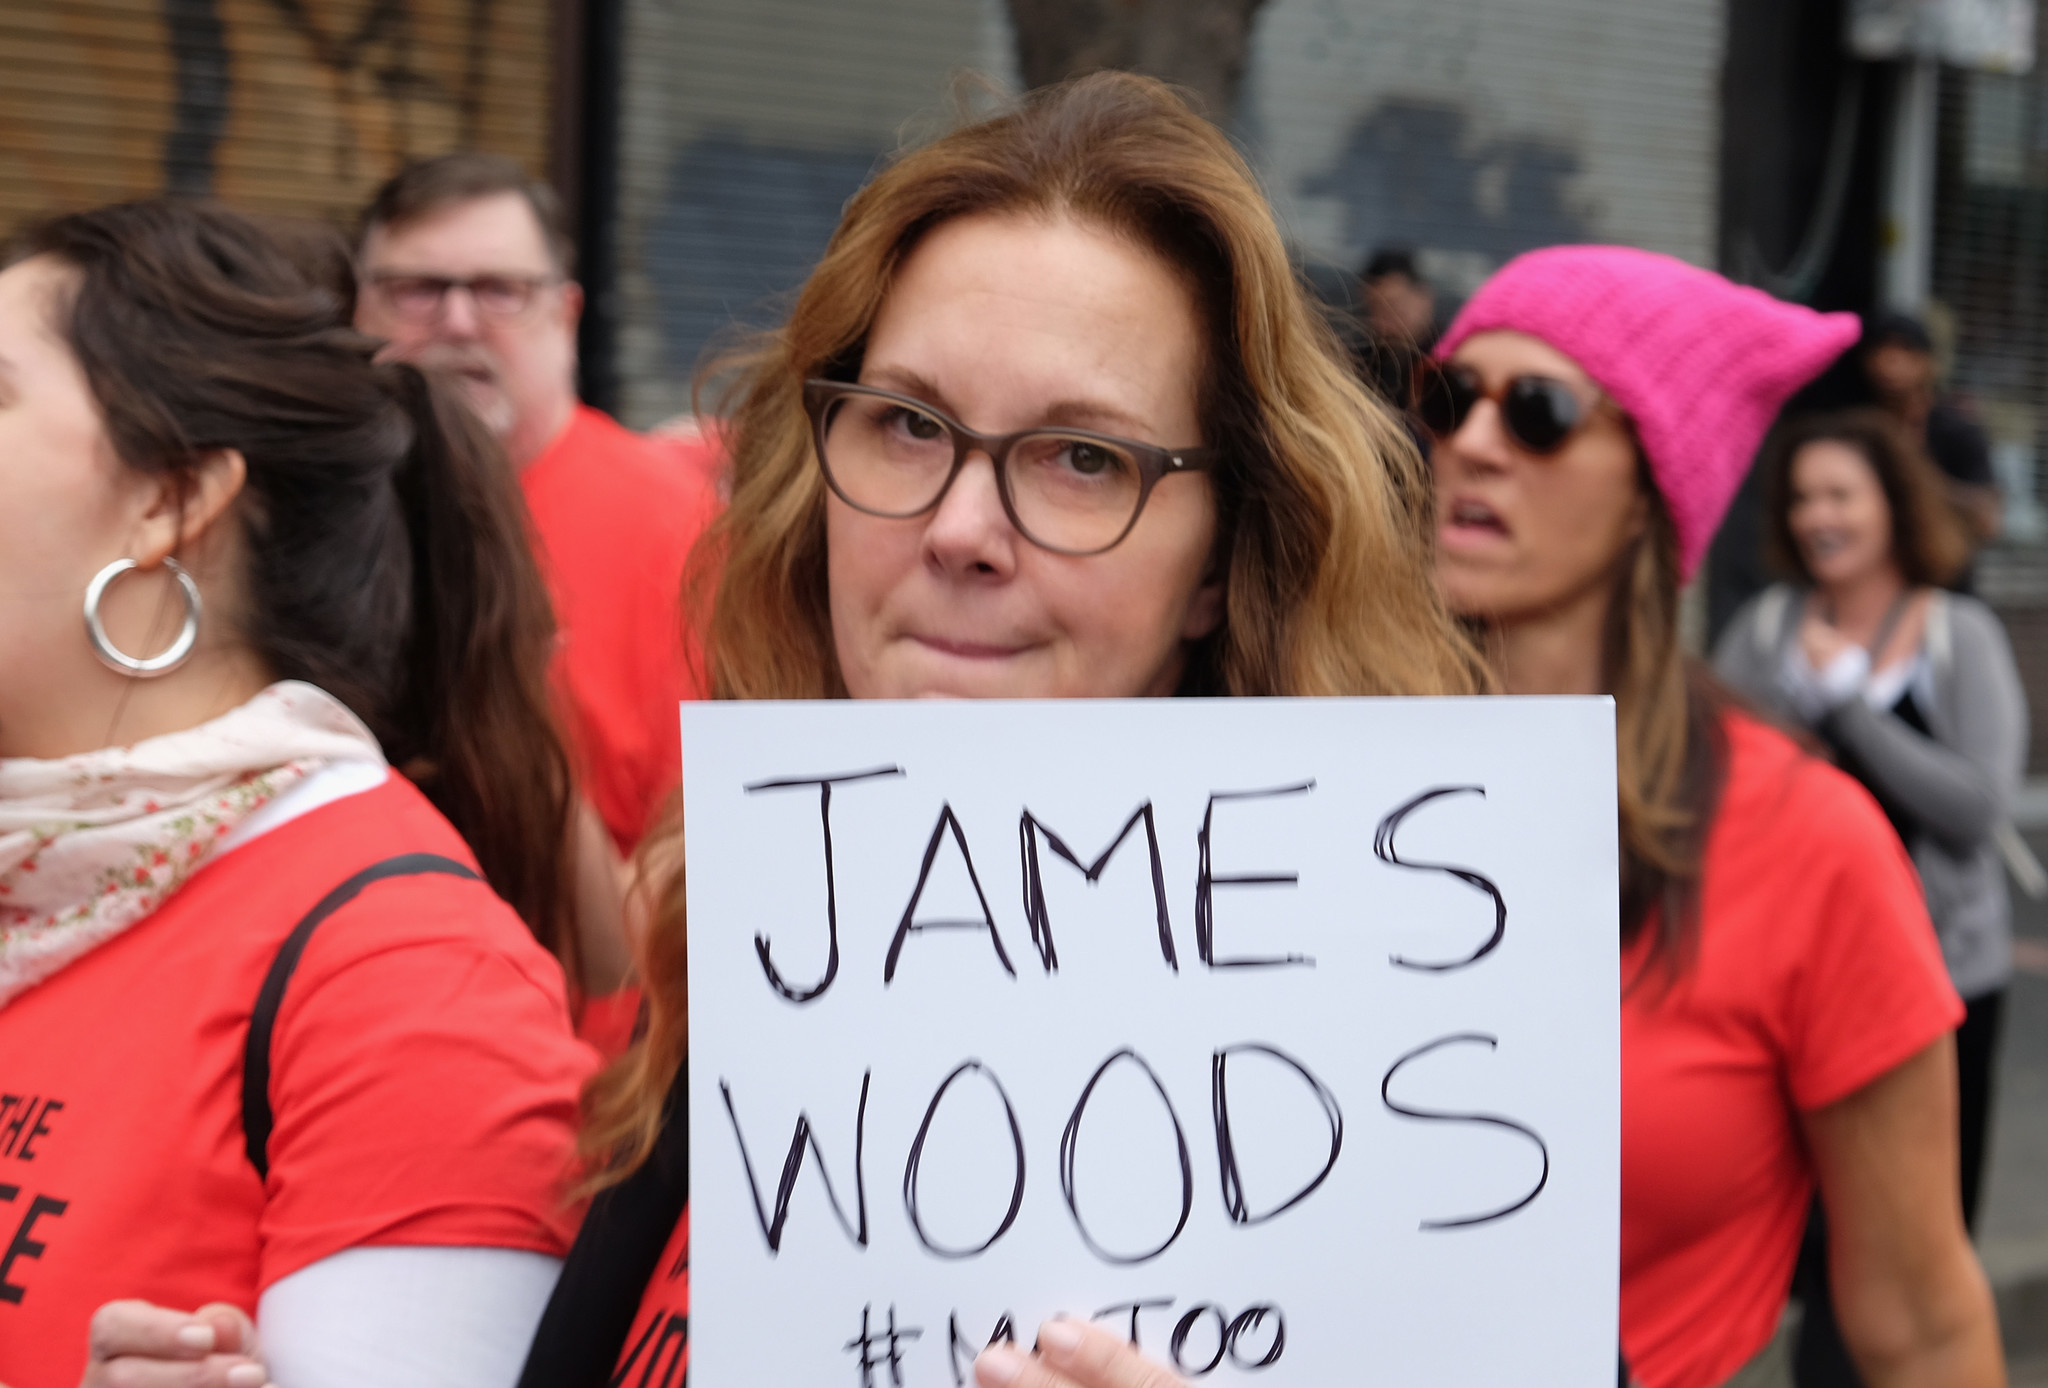 Elizabeth Perkins participates in the Take Back the Workplace March on Nov. 12 in Hollywood. (Sarah Morris / Getty Images)